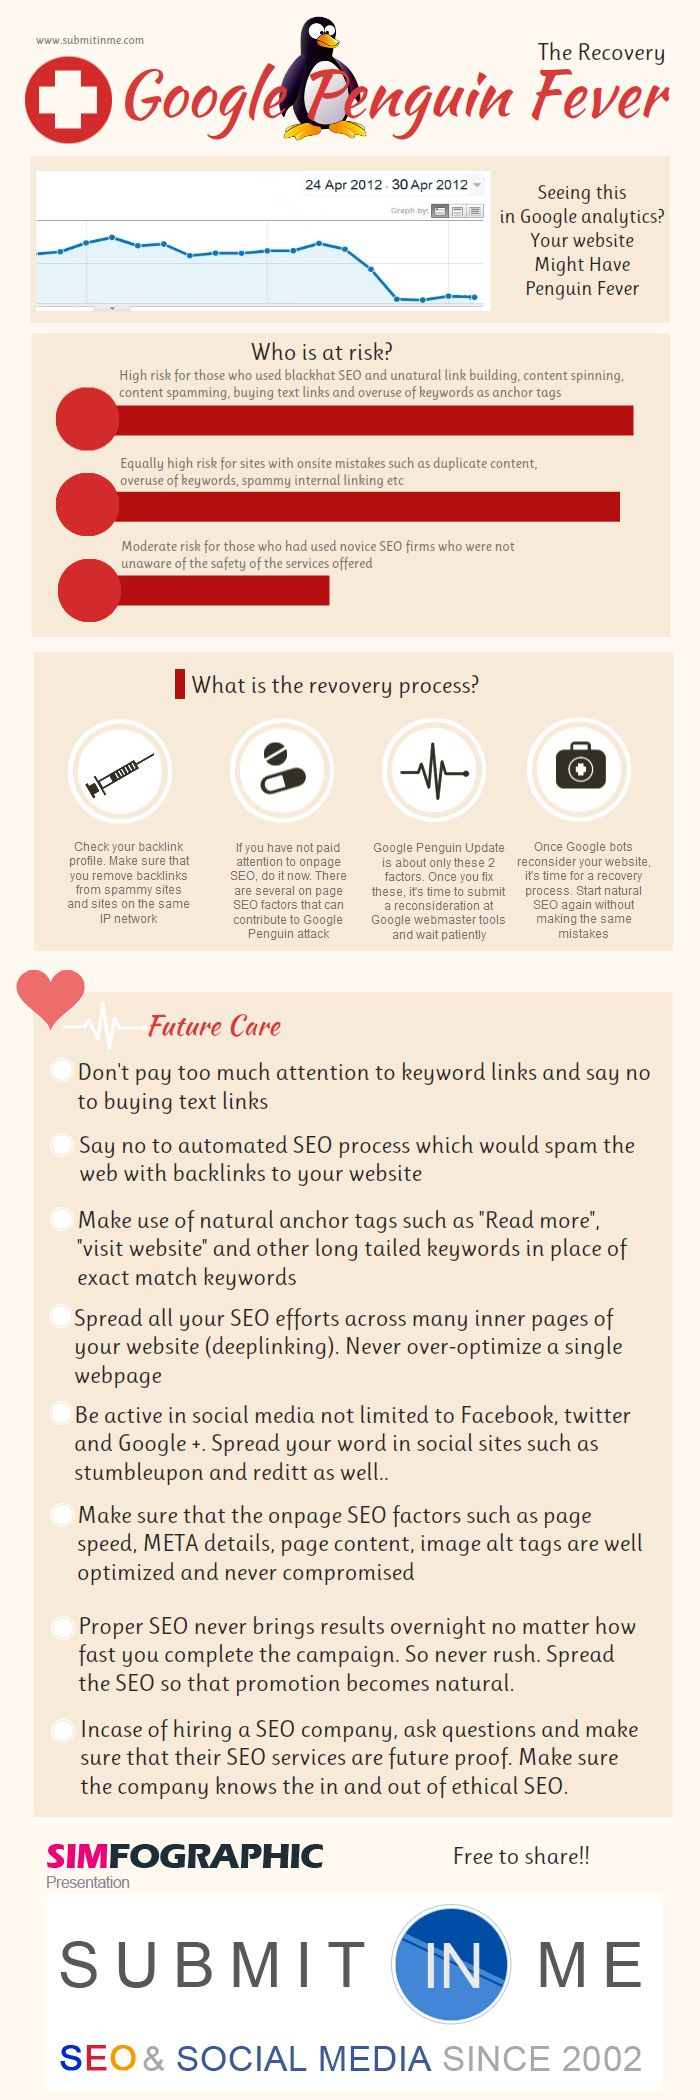 "Google Penguin Fever: The Recovery  Filed in Marketing     Countless numbers of website have been recently hit by the Google Penguin update. For many, the ""Penguin recovery process"" is something they must now thing about. There are several options for Penguin recovery and the following infographic by Submitinme.com may help."